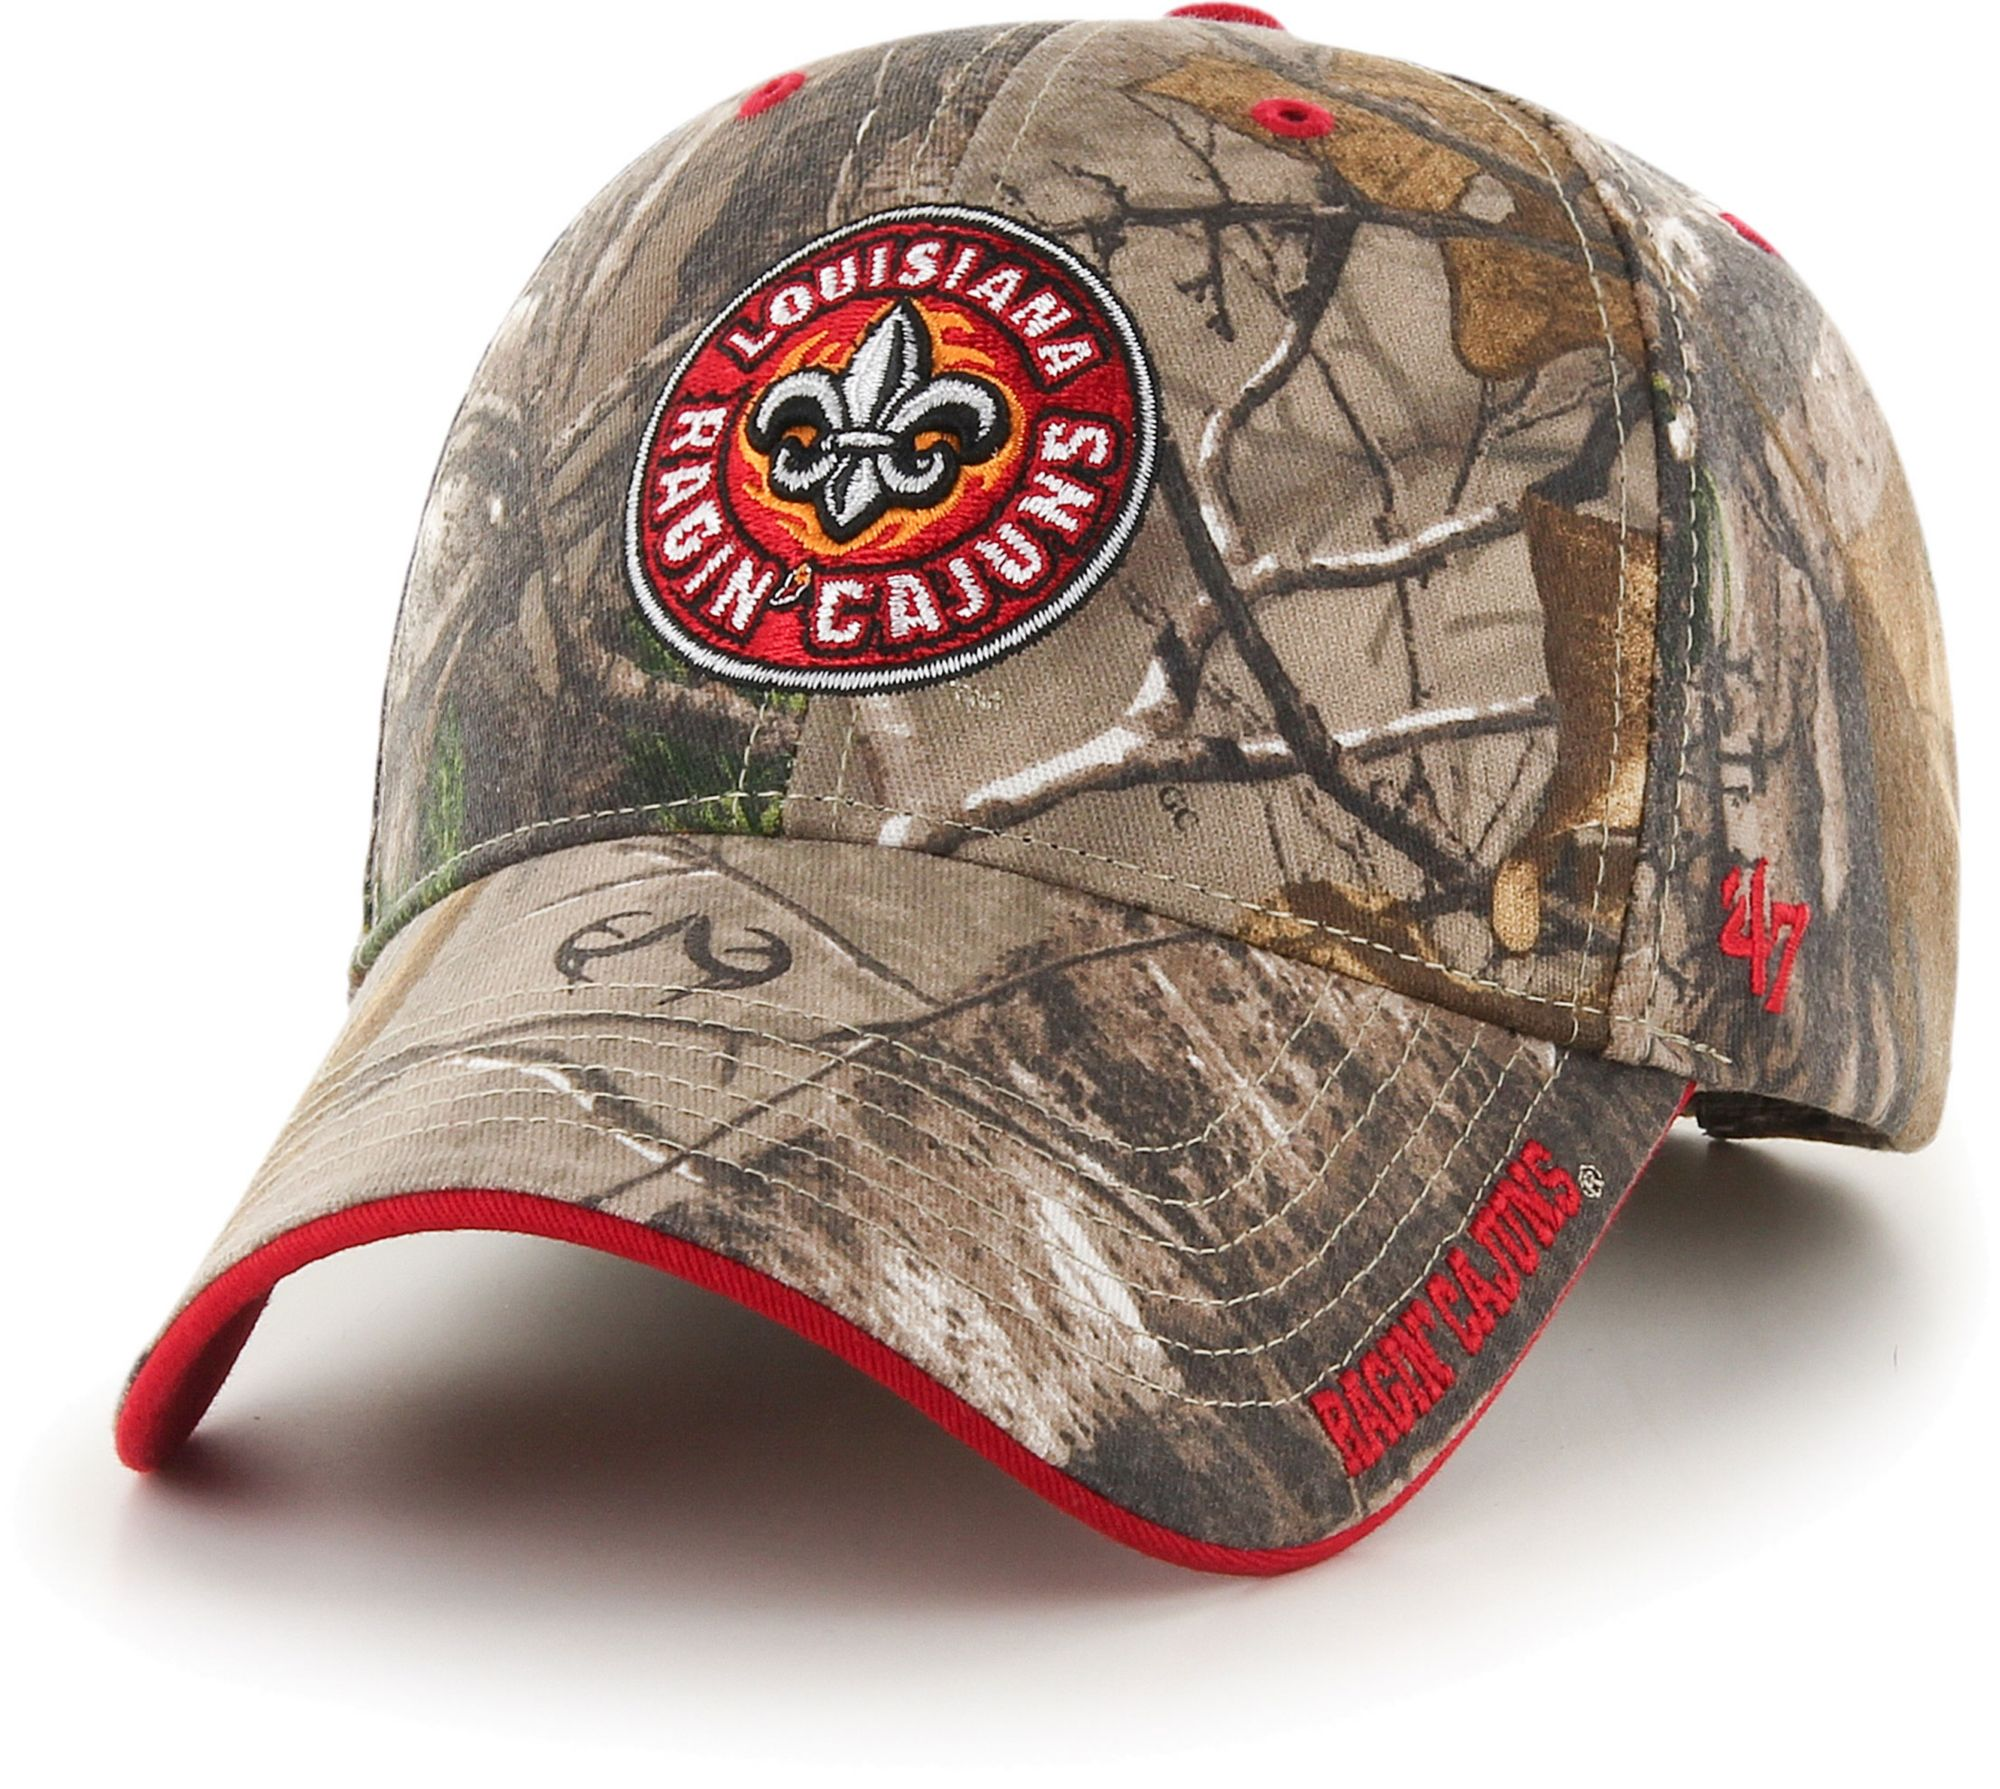 '47 Men's Louisiana-Lafayette Ragin' Cajuns Camo Realtree Frost MVP Adjustable Hat, Size: One size, Green thumbnail